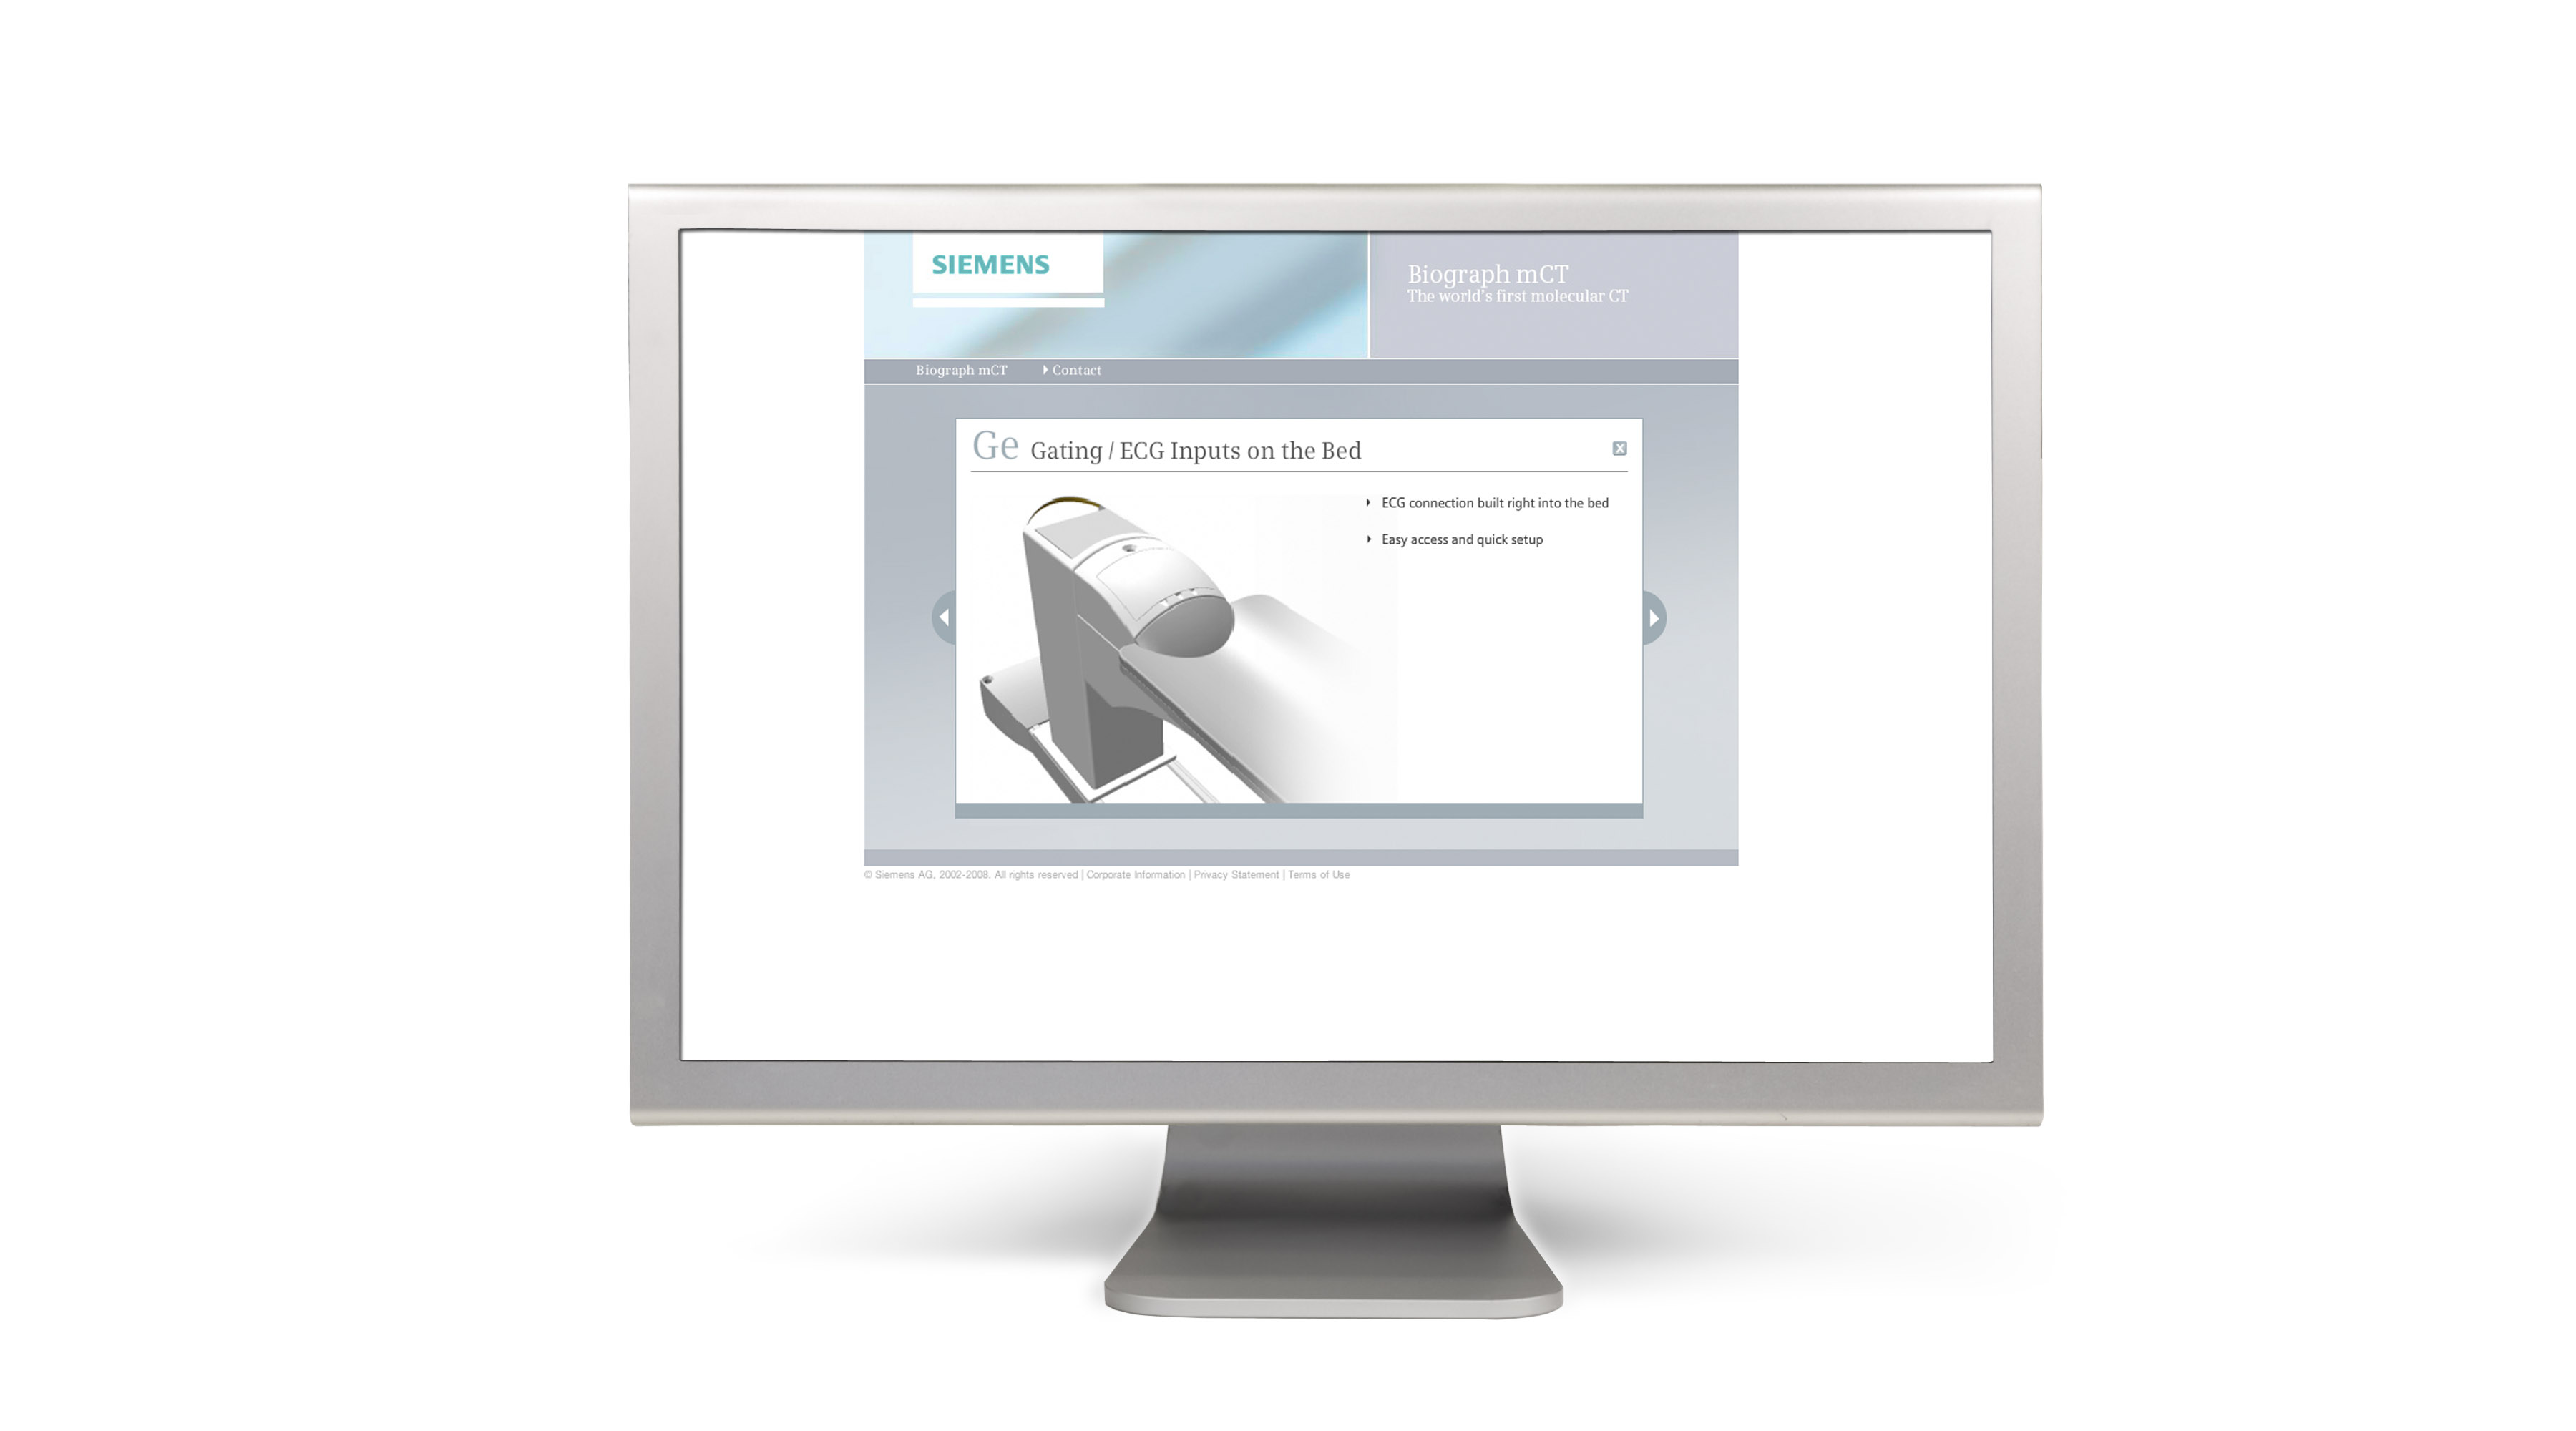 mct2 Siemens Medical Solutions